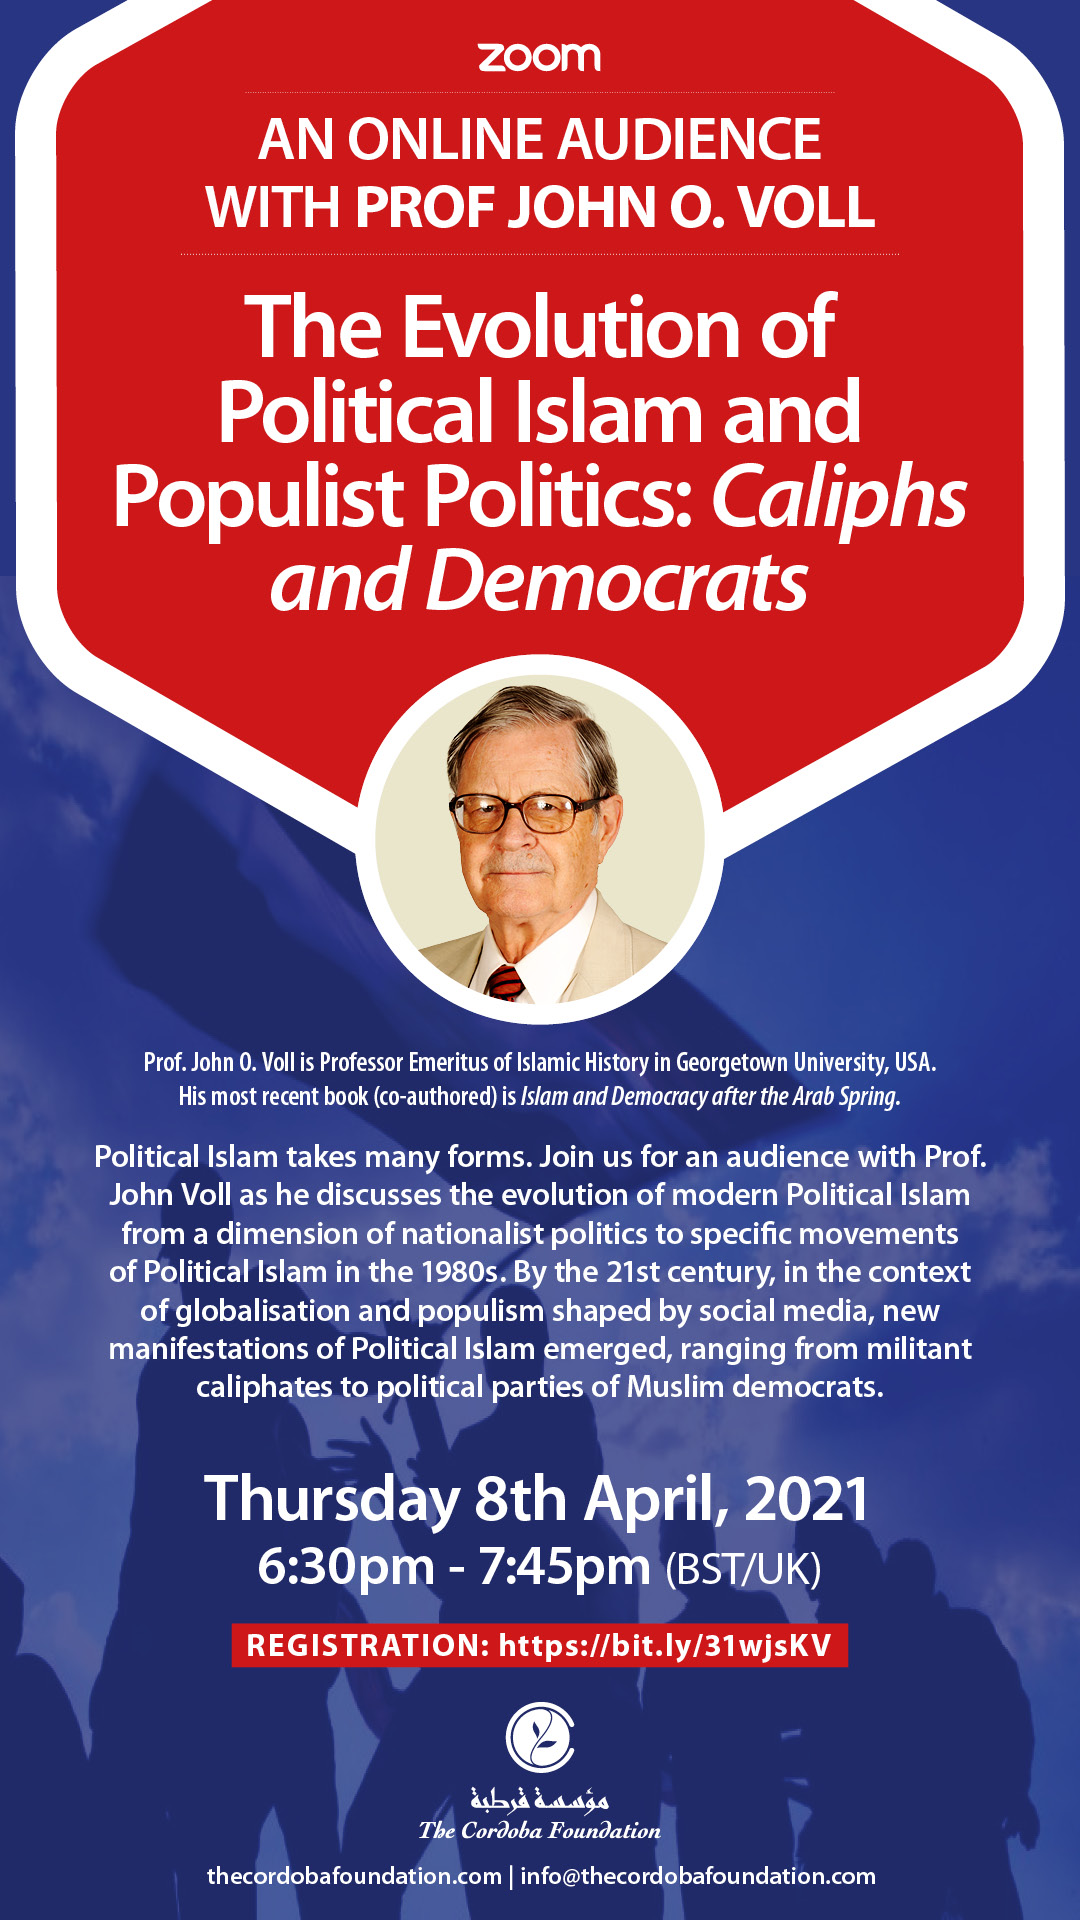 The Evolution of Political Islam and Populist Politics: Caliphs and Democrats